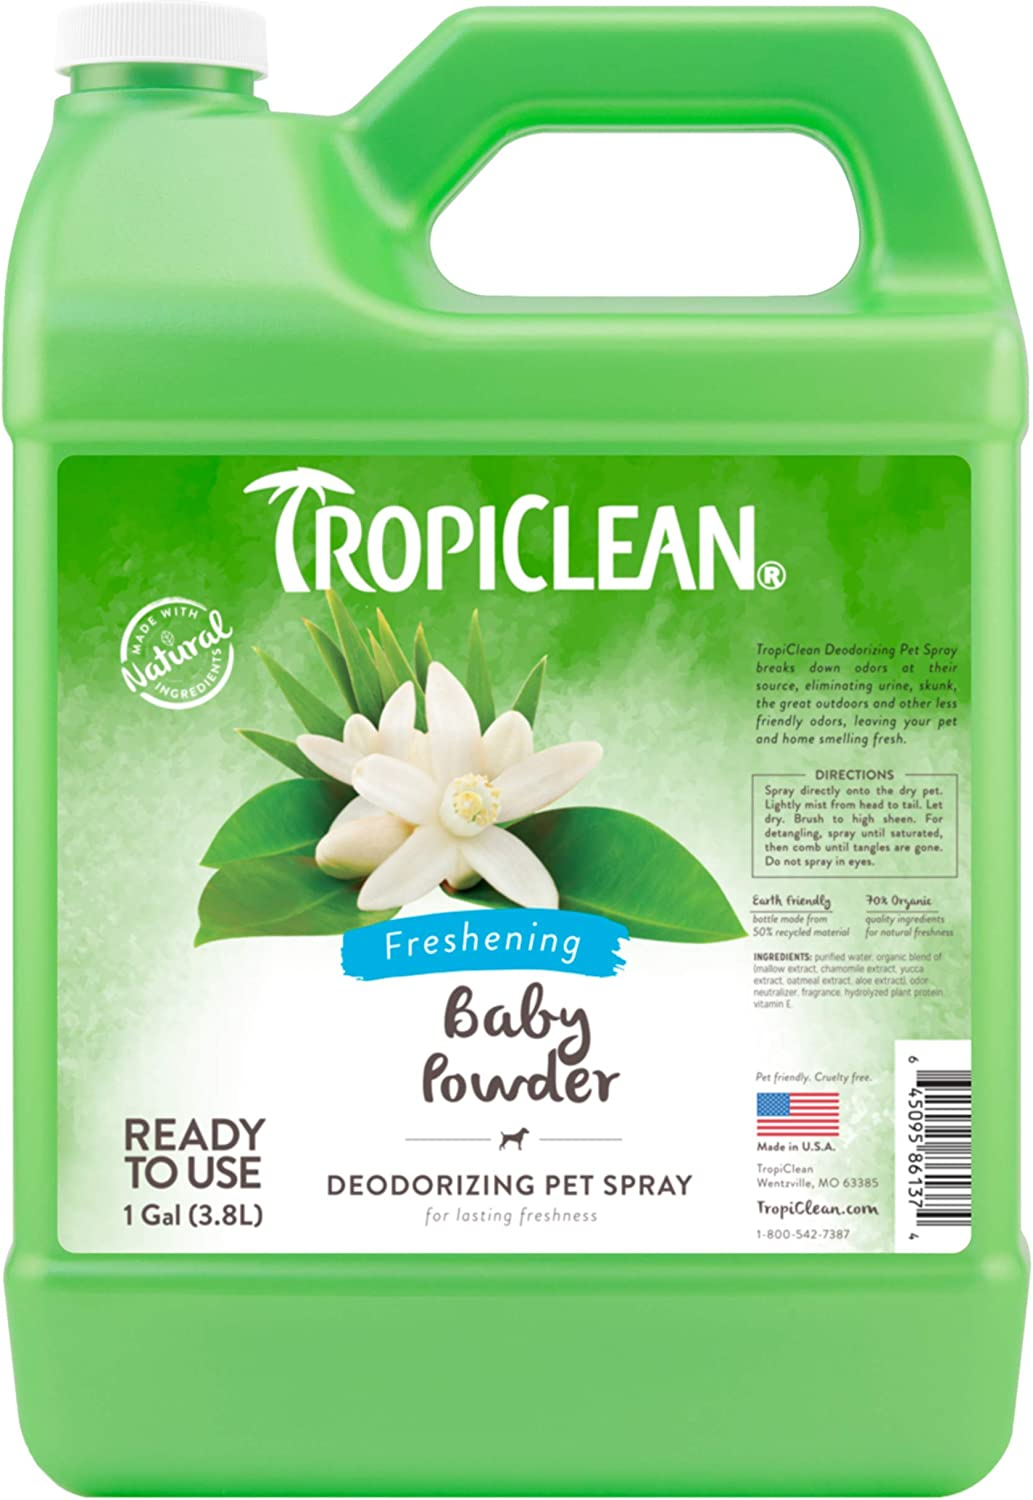 TropiClean Deodorizing Sprays for Pets US - USA Sales for sale Made It is very popular in